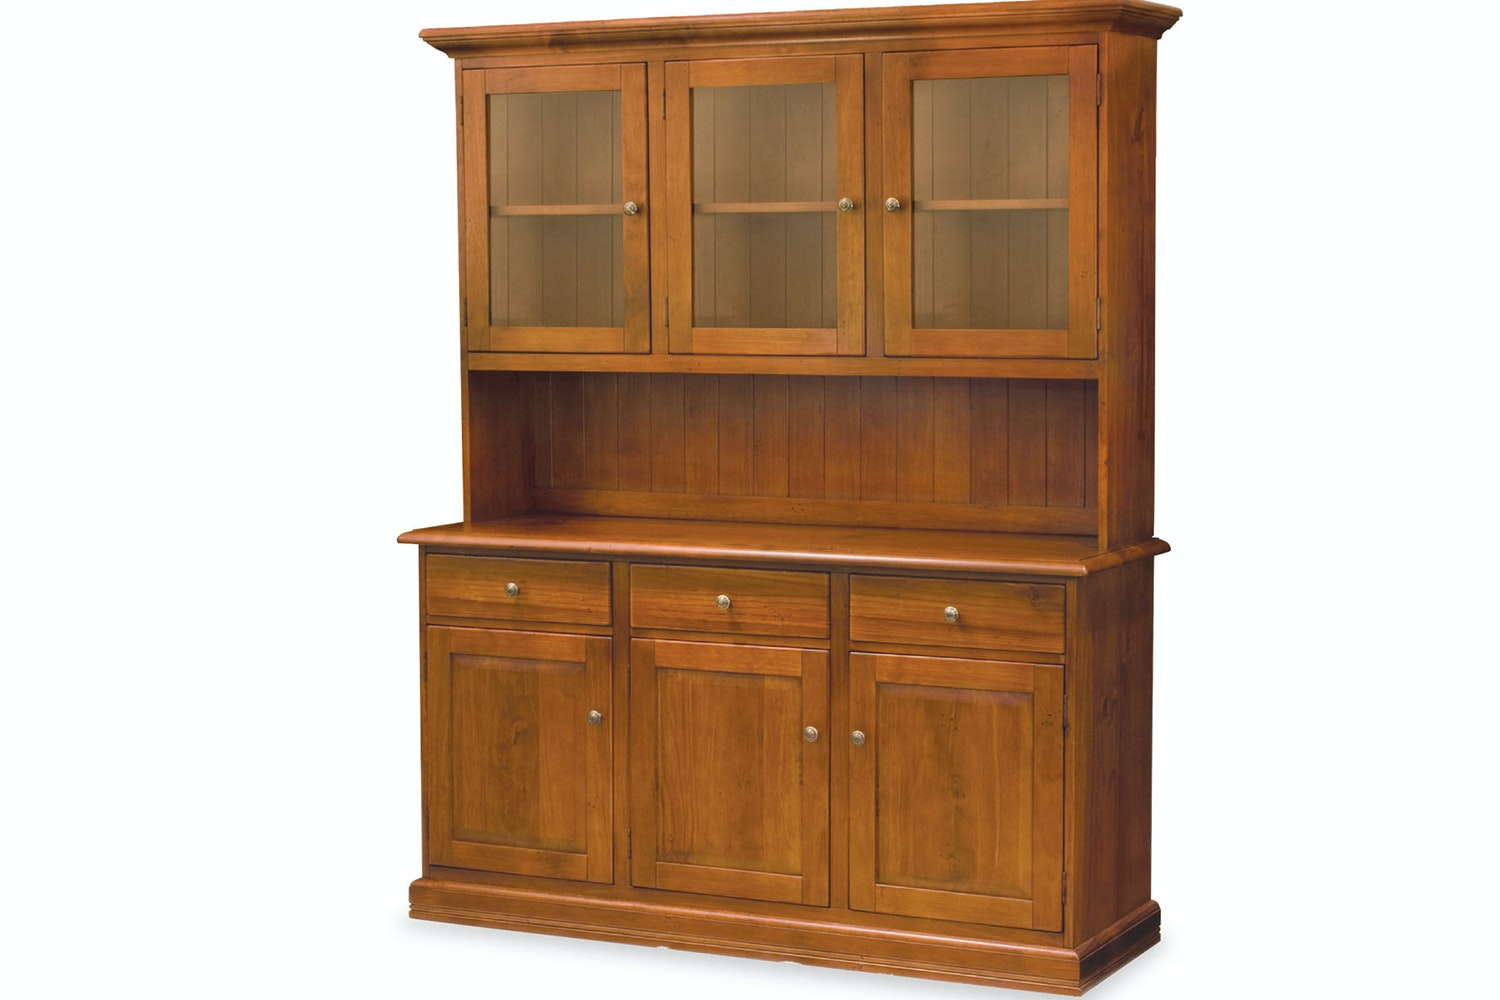 Waihi Wall Unit By Coastwood Furniture